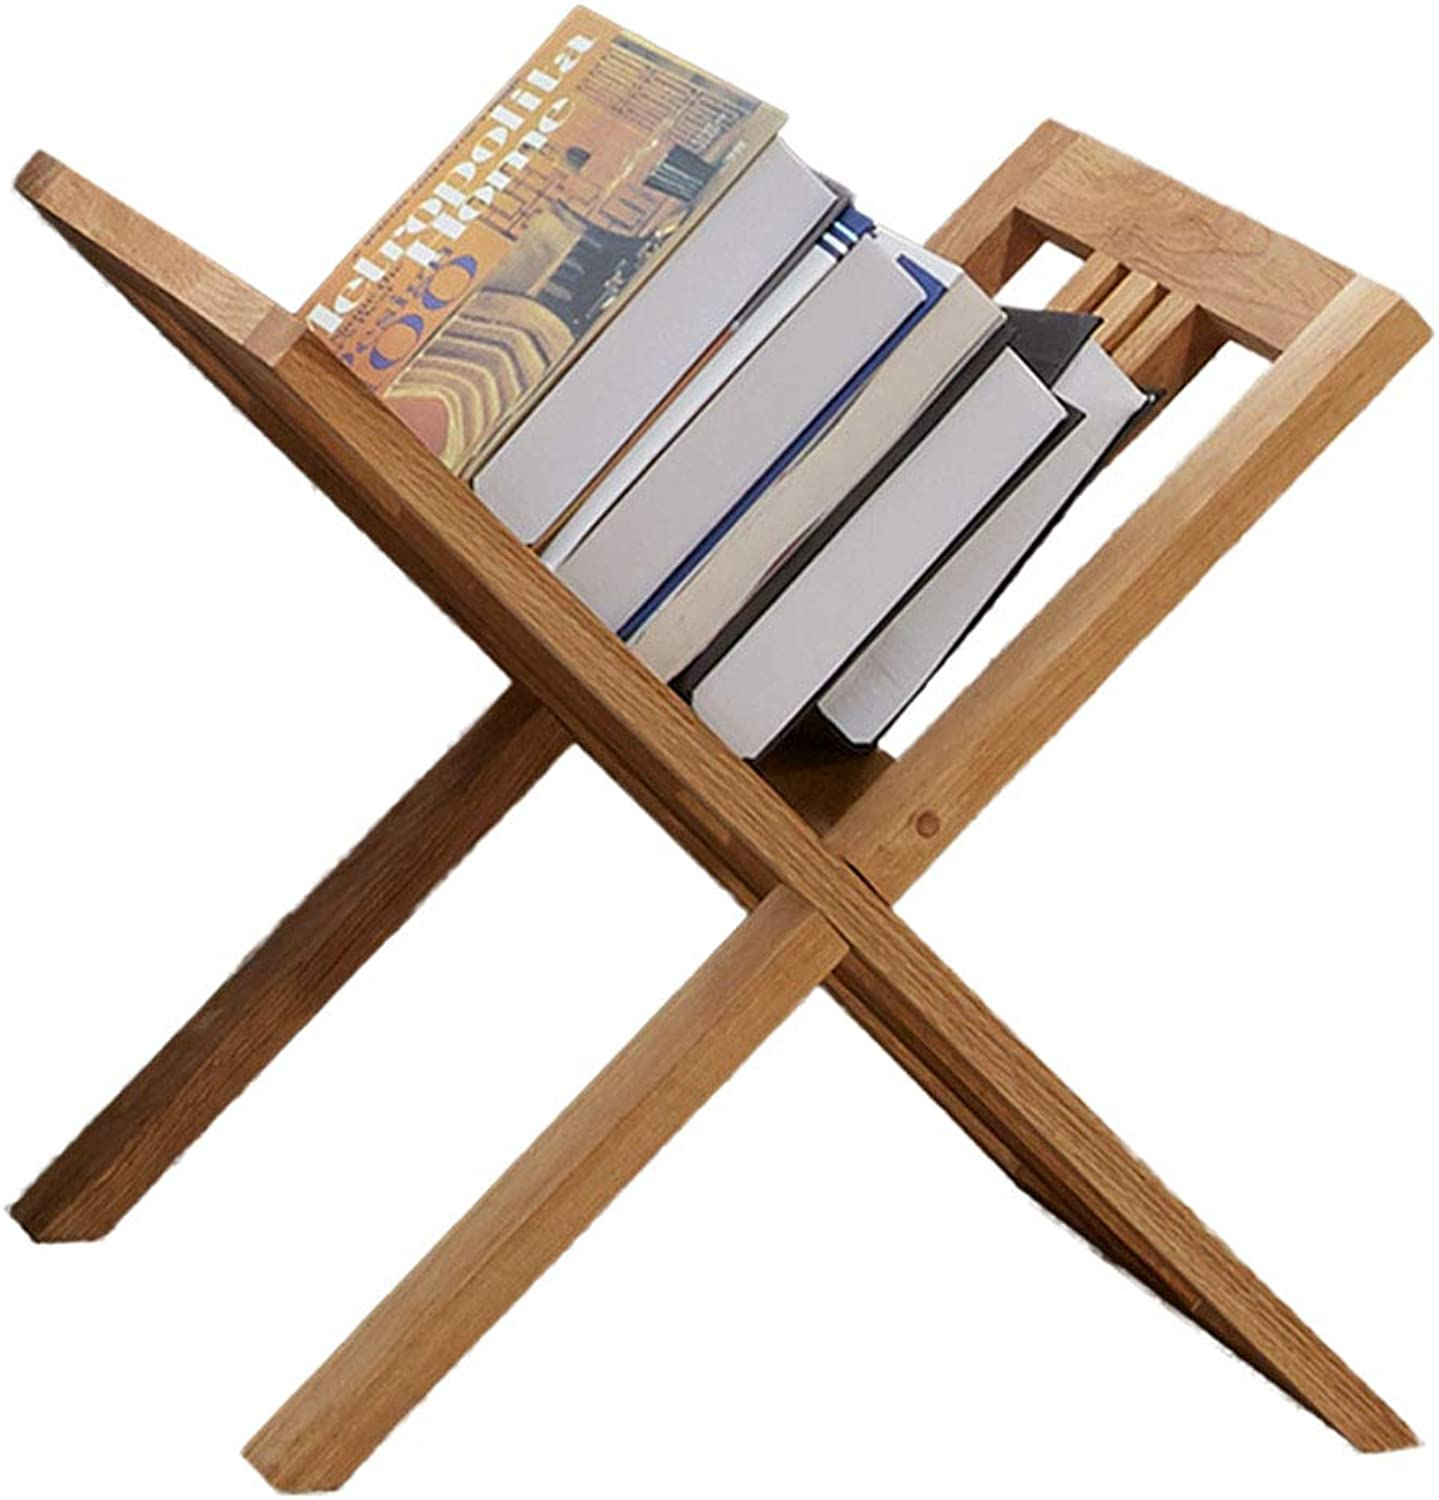 CL Solid Wood Floor-Standing Creative Multi-Function Bookshelf Storage Rack 39X36X35cm Bookshelf